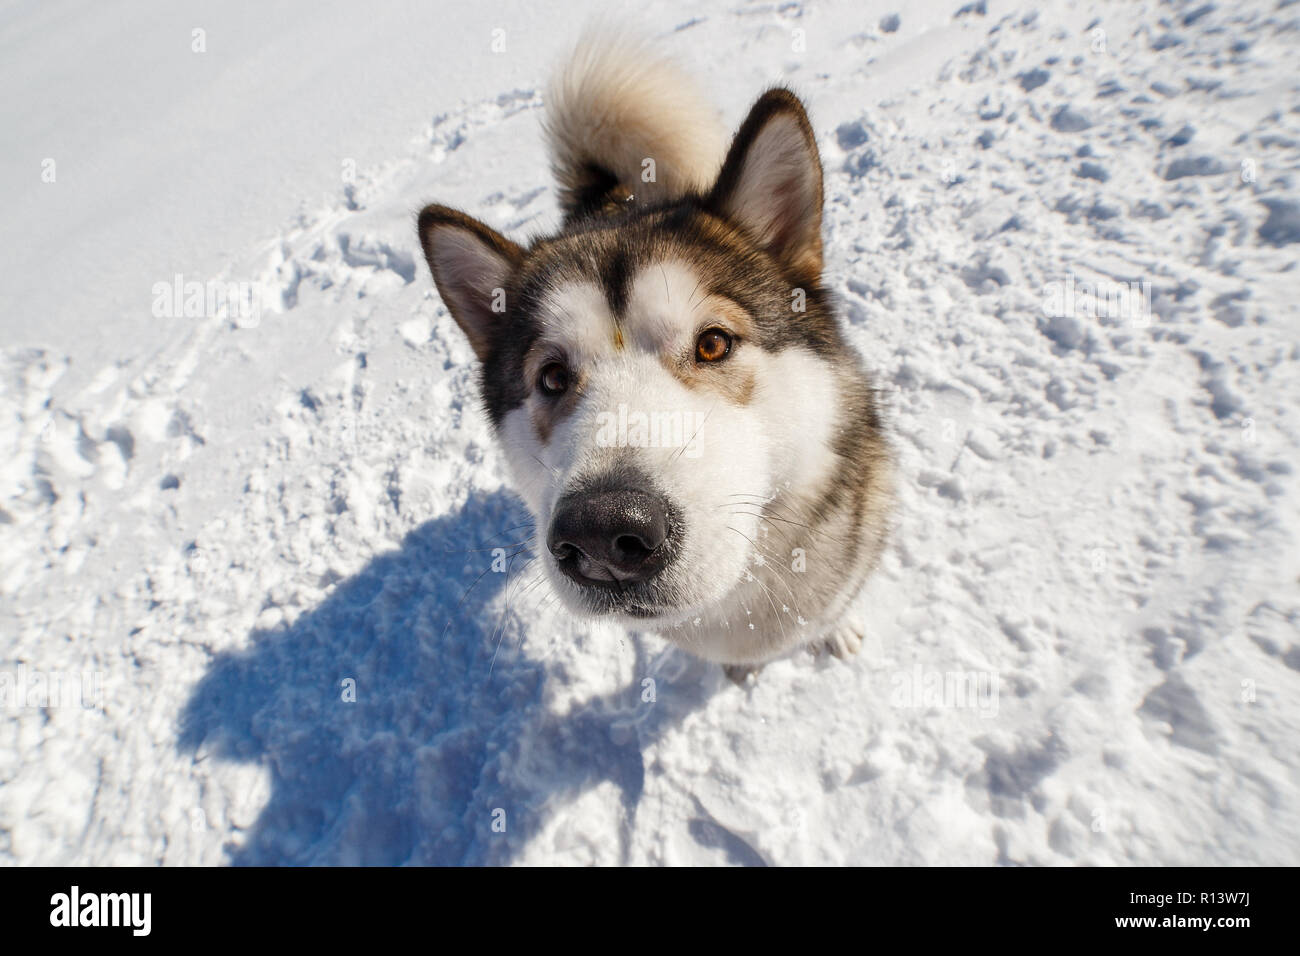 Fuuny High Resolution Stock Photography And Images Alamy Akc alaskan malamute dogs · kennel · counseling & mental health. alamy